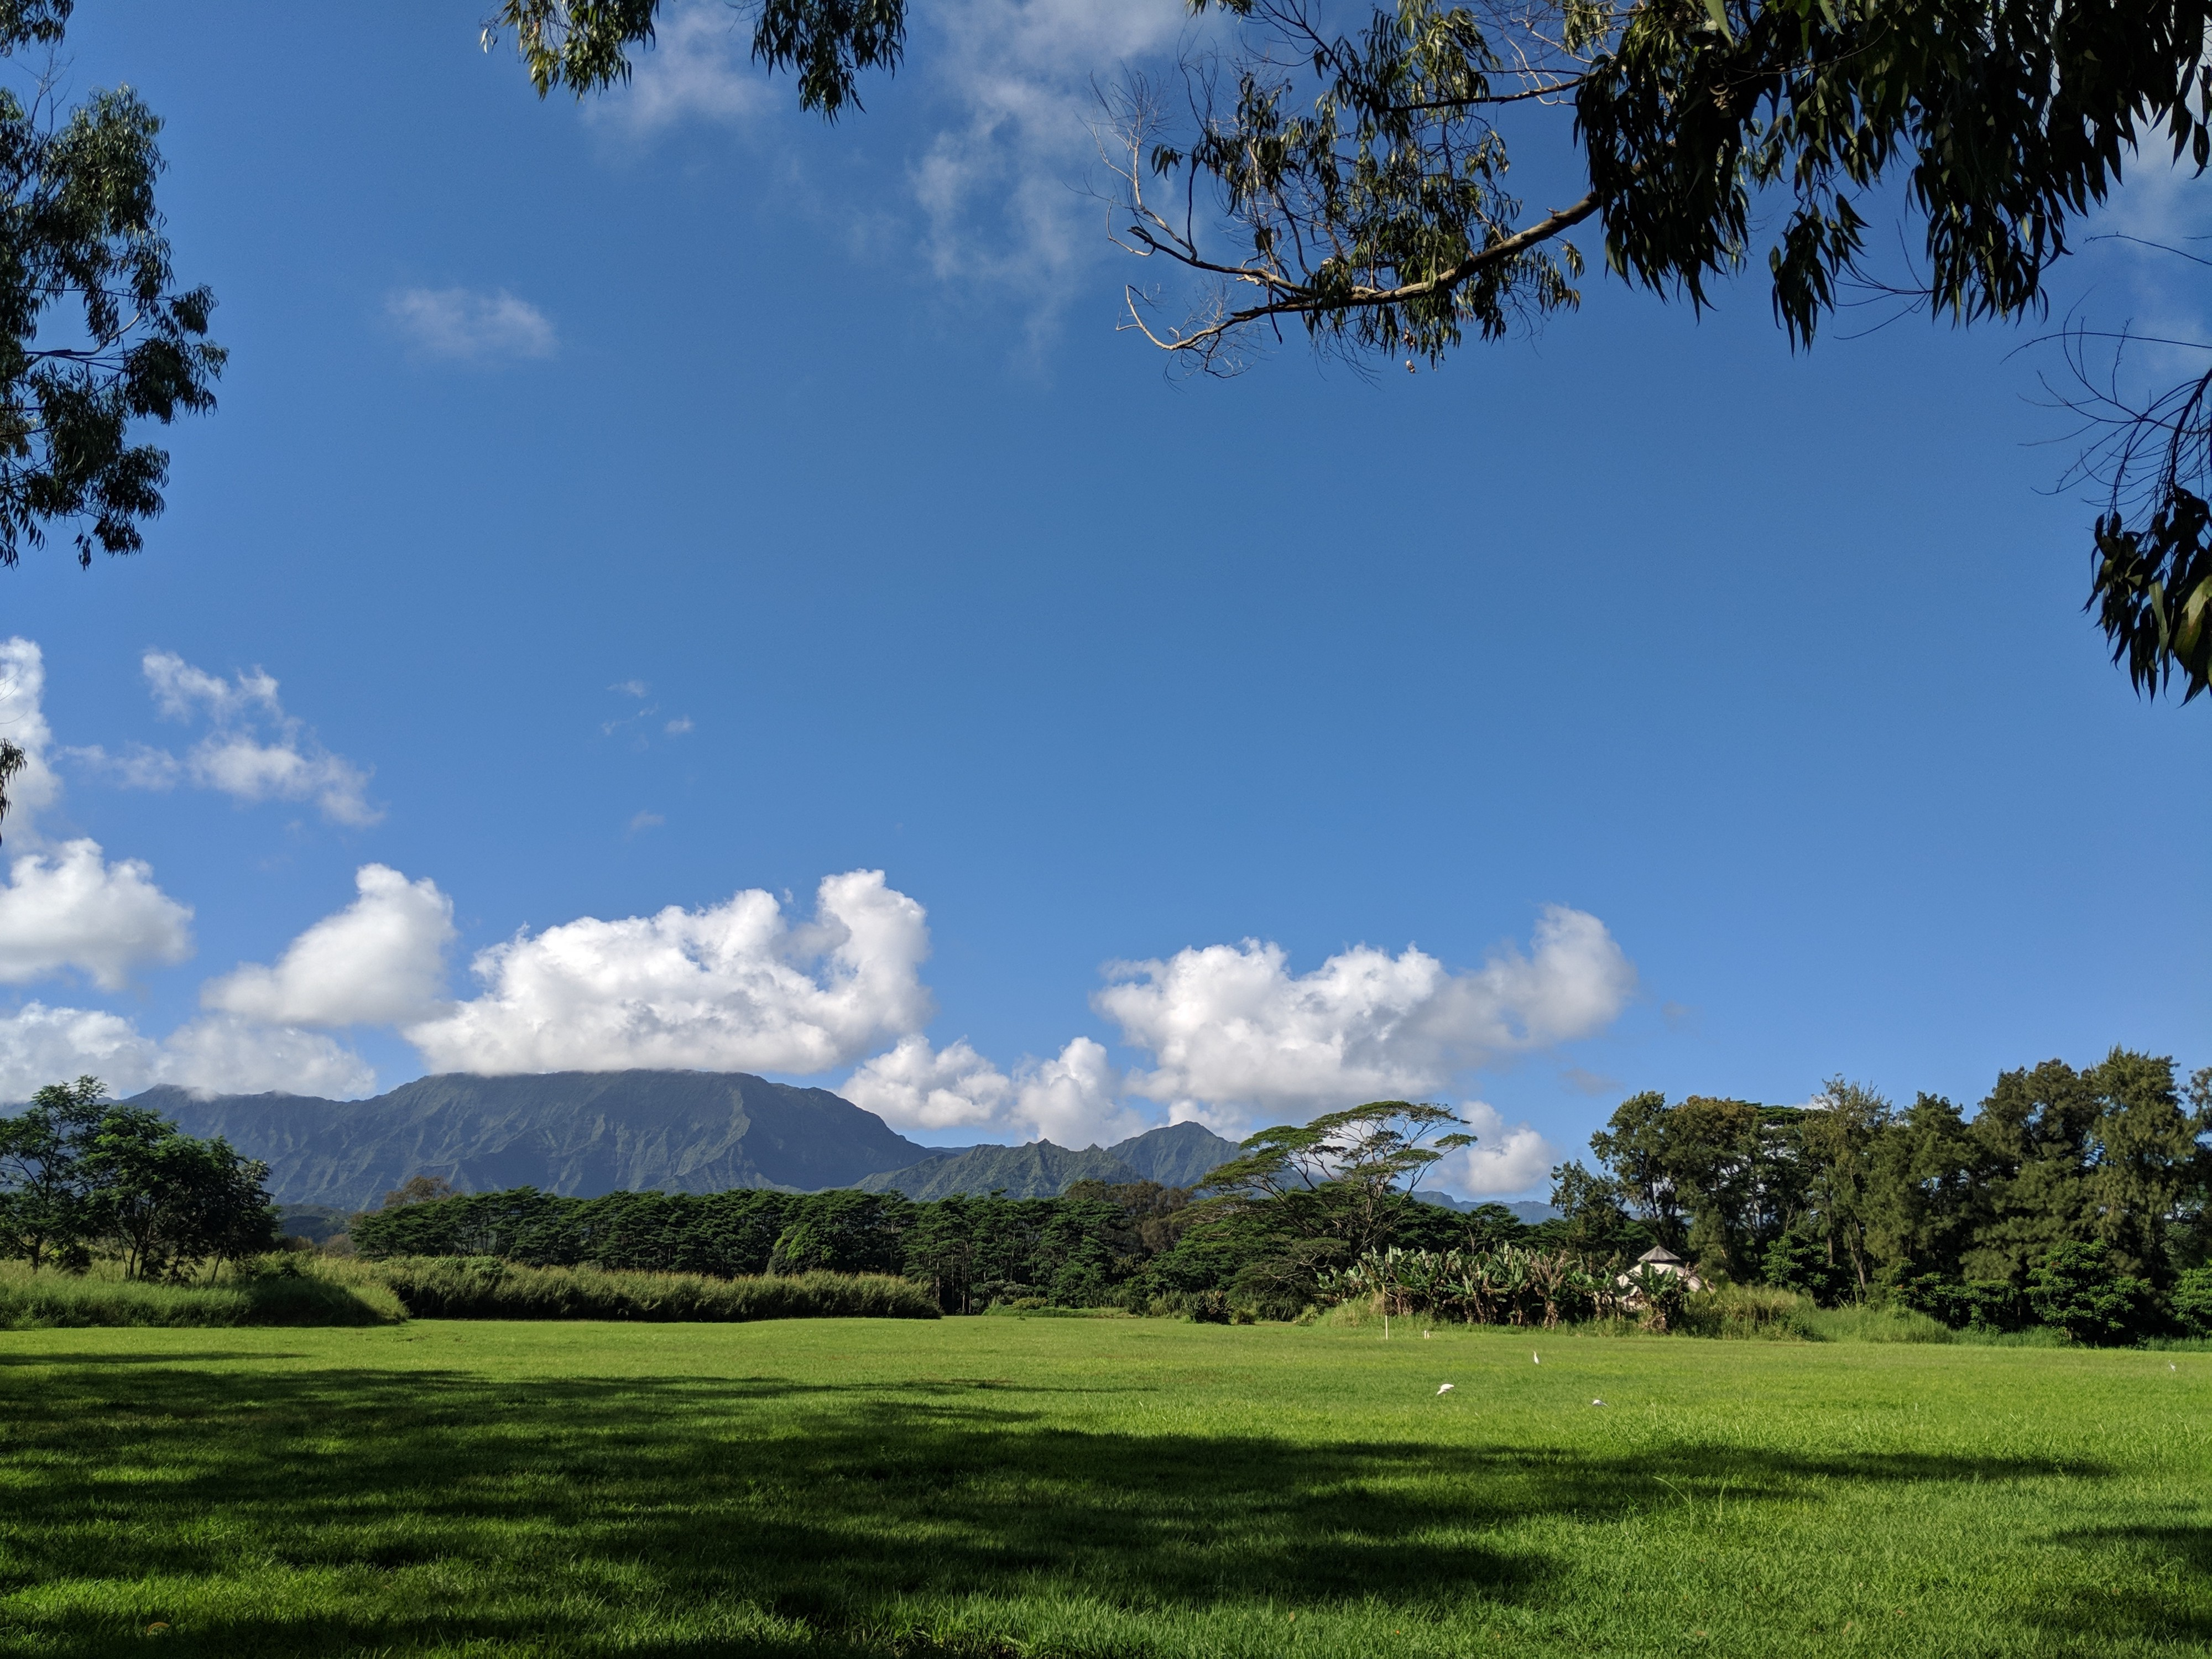 A view of mountains, green grass, and clear blue skies over a pasture on the island of Kauai.